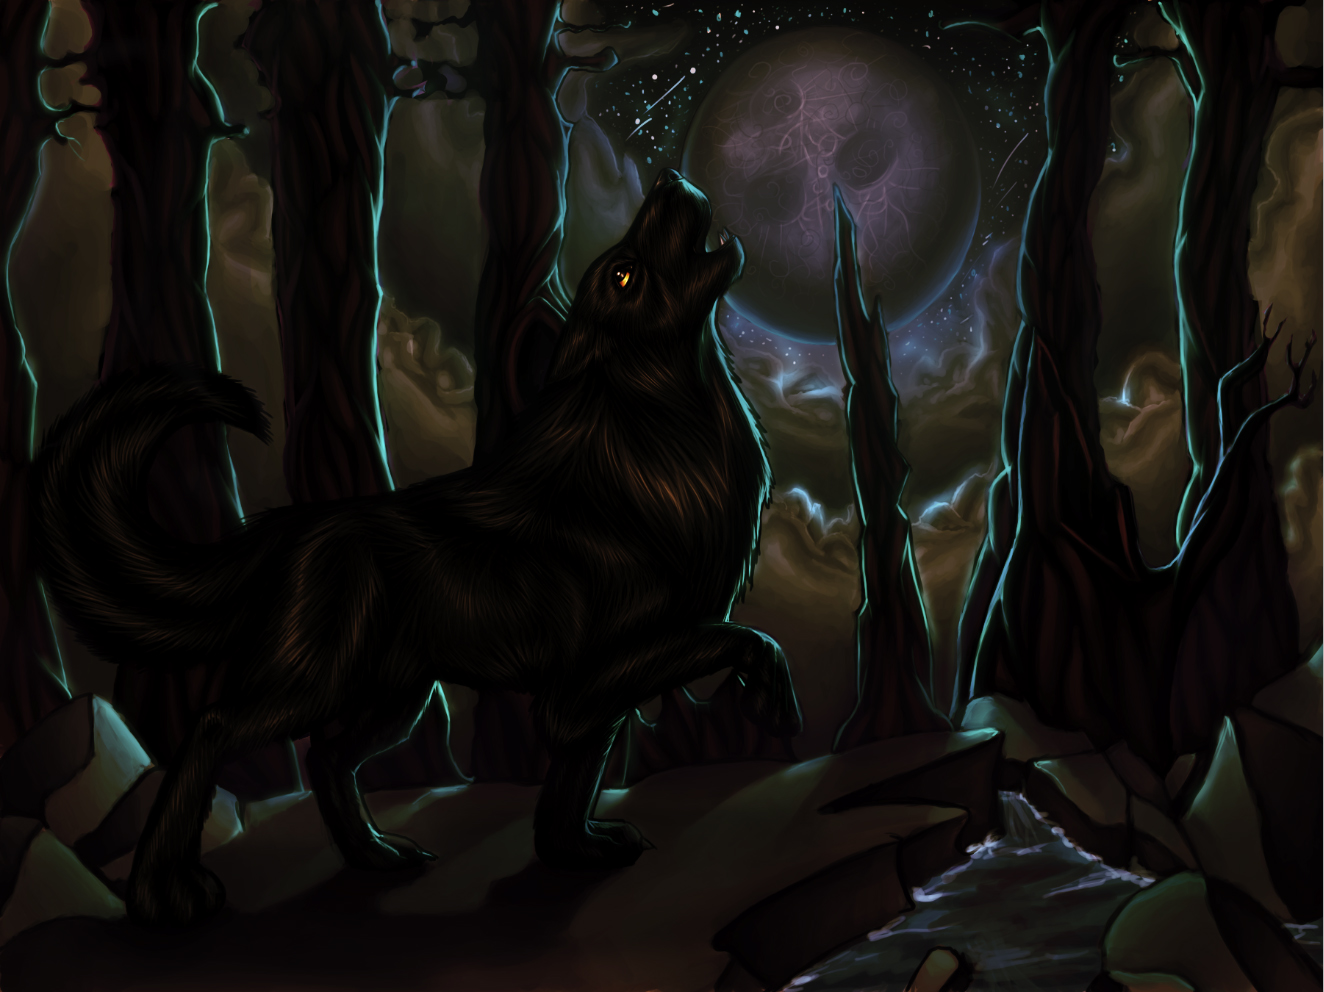 howls of the harvest moon